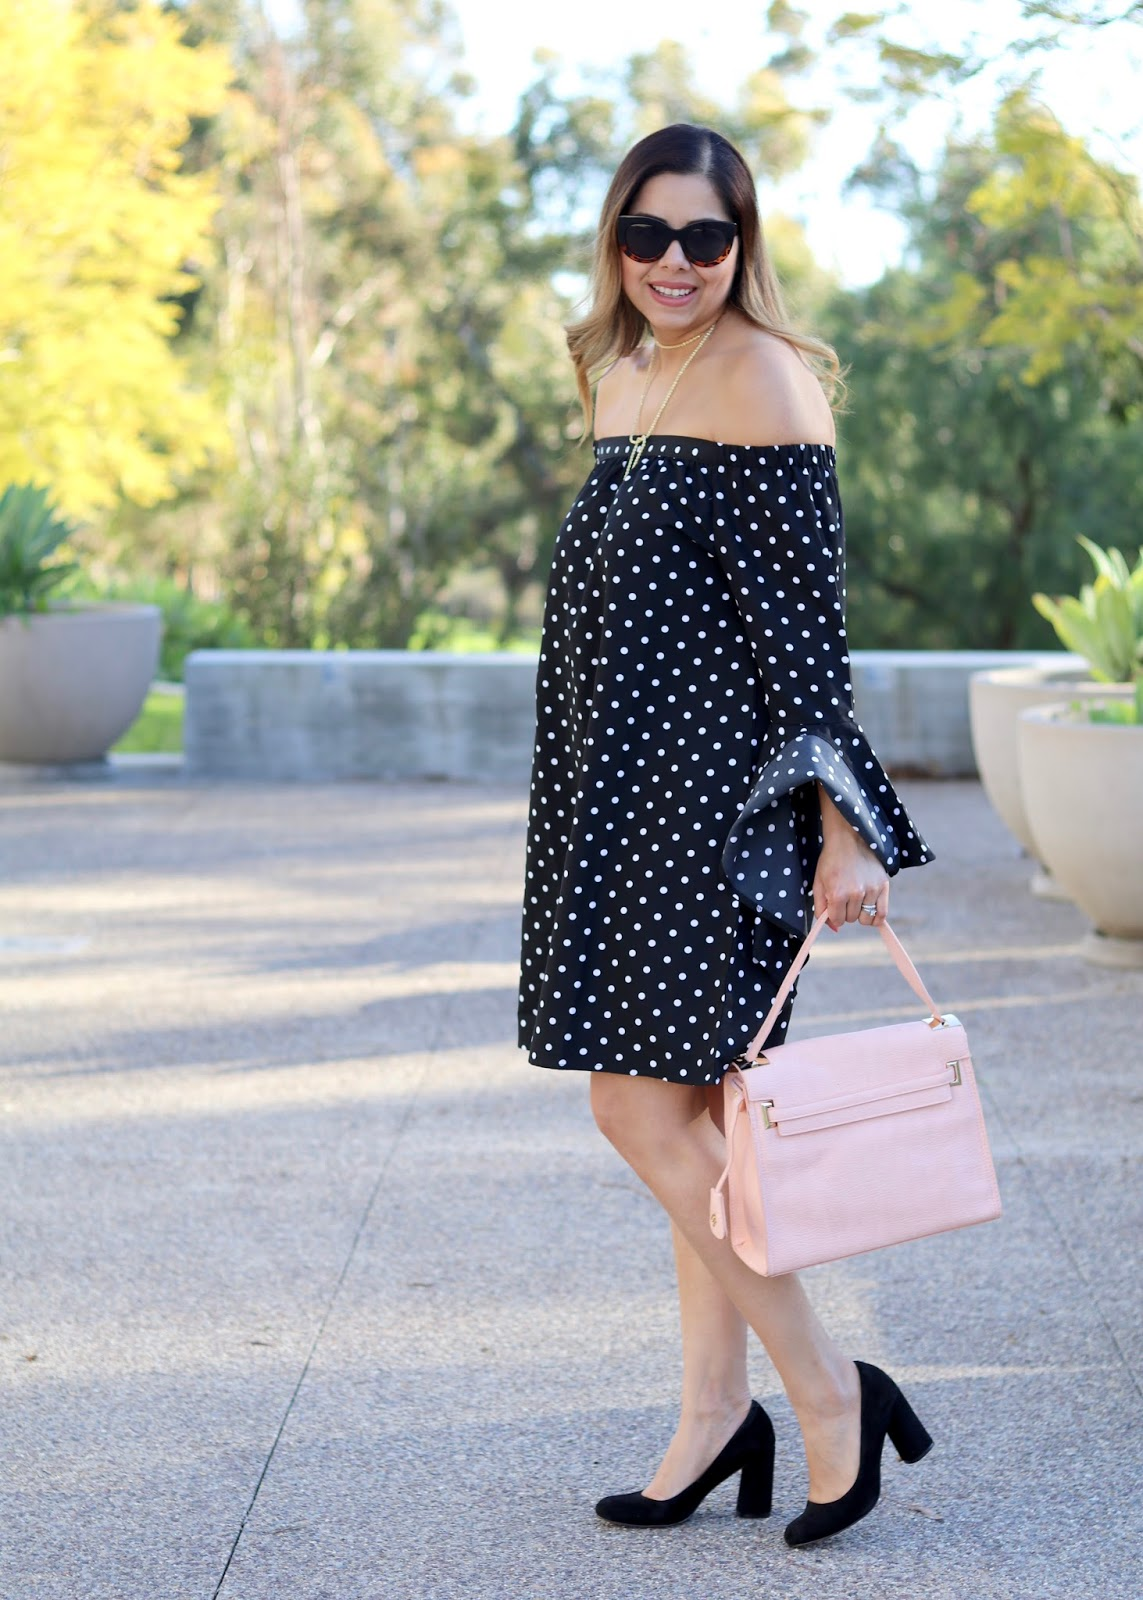 ASOS dress, ASOS blogger, Affordable cute dresses